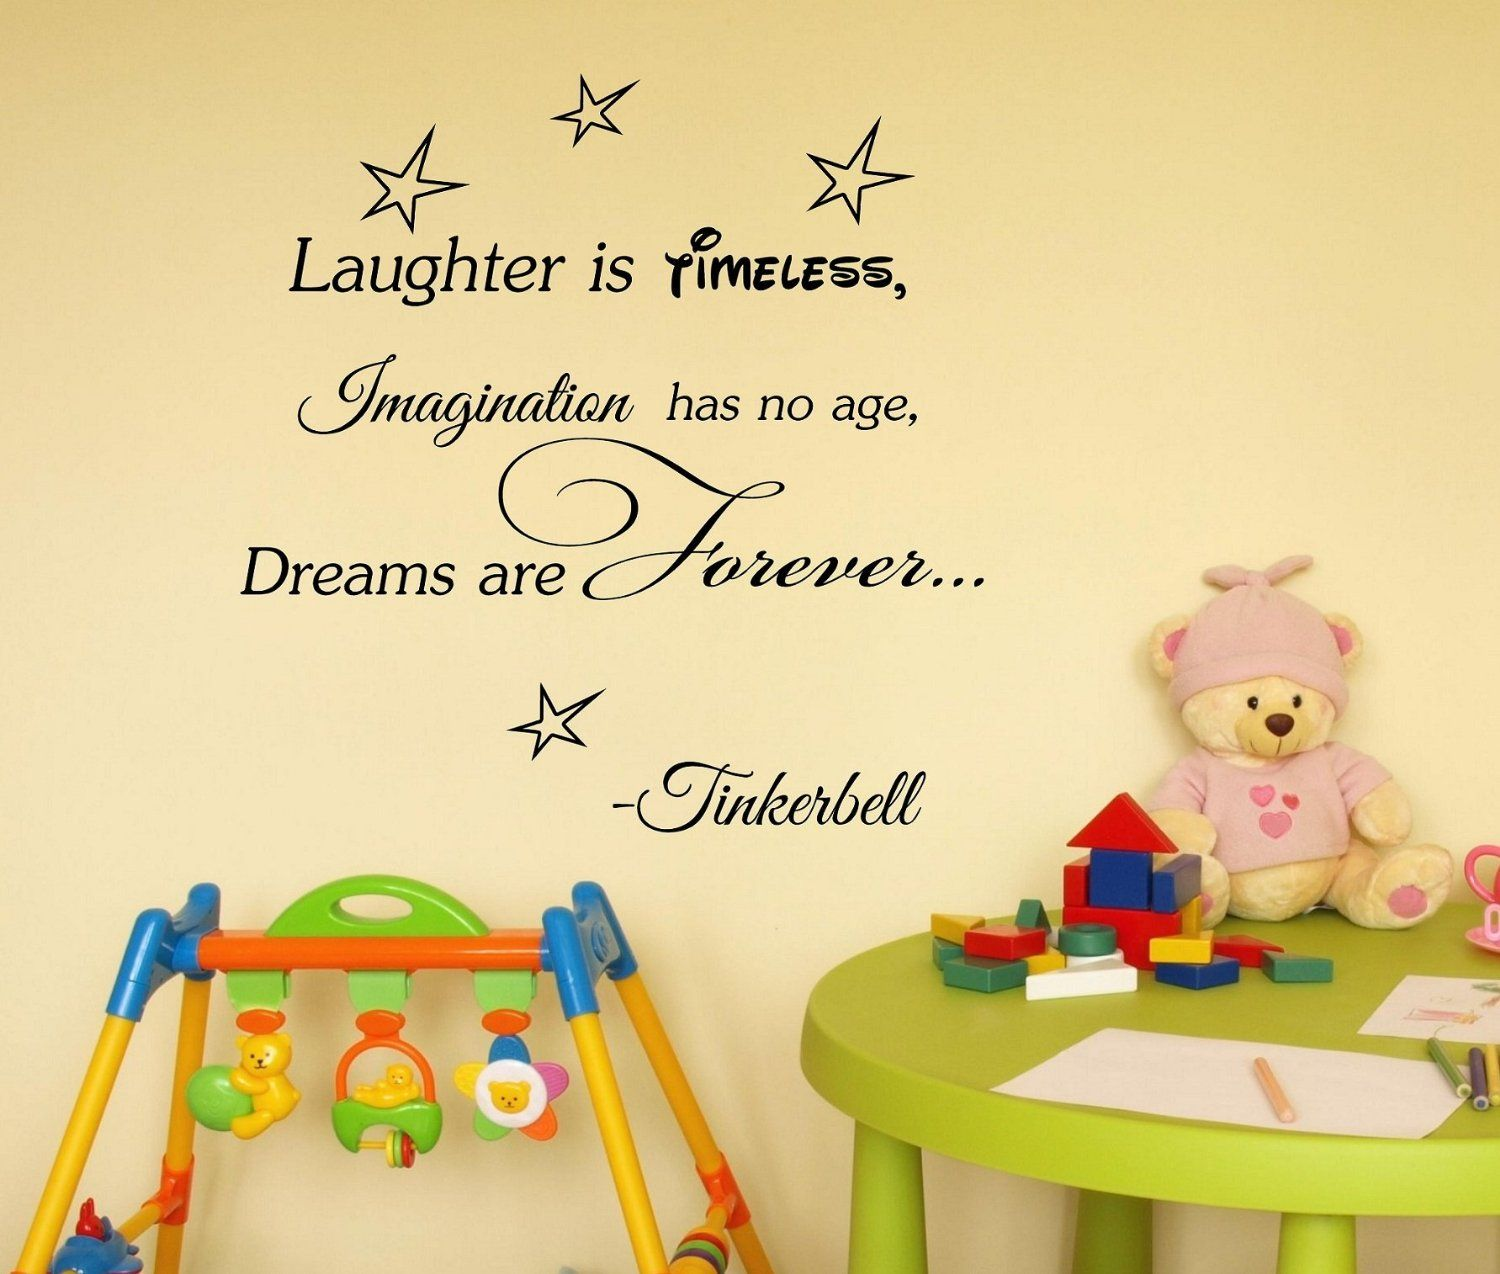 http://www.amazon.com/Laughter-timeless-imagination-tinkerbell ...